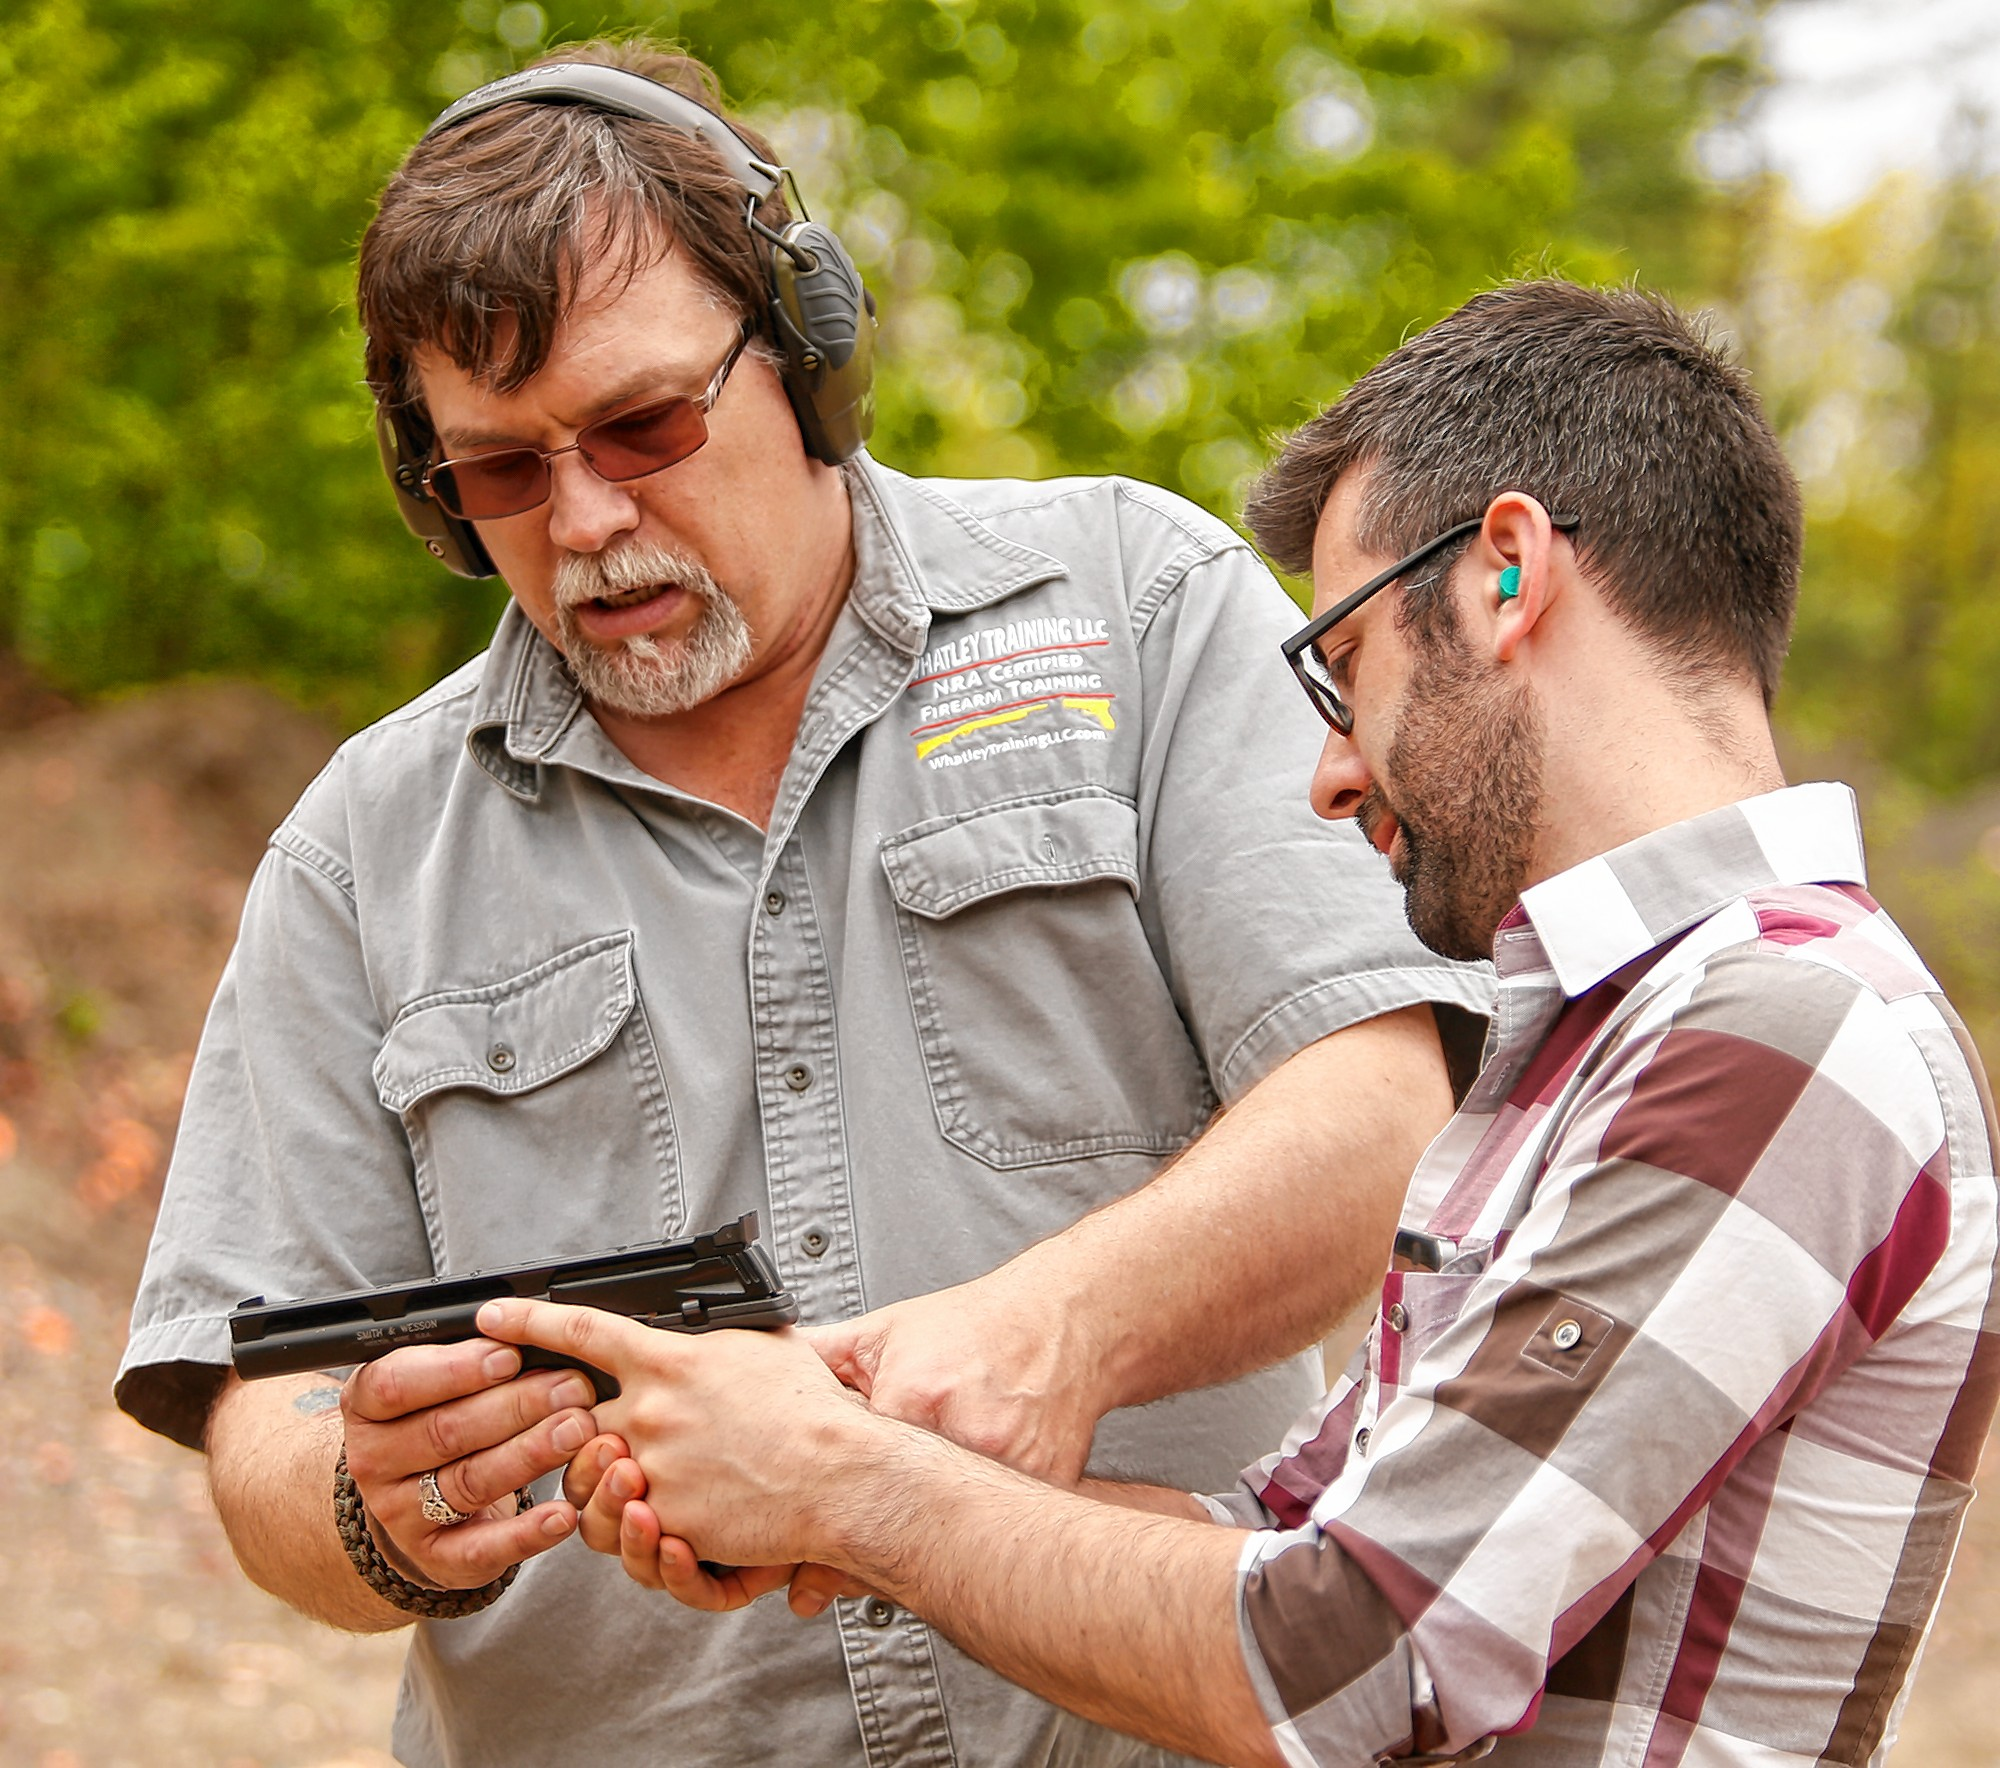 Kirk Whatley, left, instructs Valley Advocate reporter Hunter Styles during a group firearms training class Saturday at Norwottuck Fish and Game in Amherst.